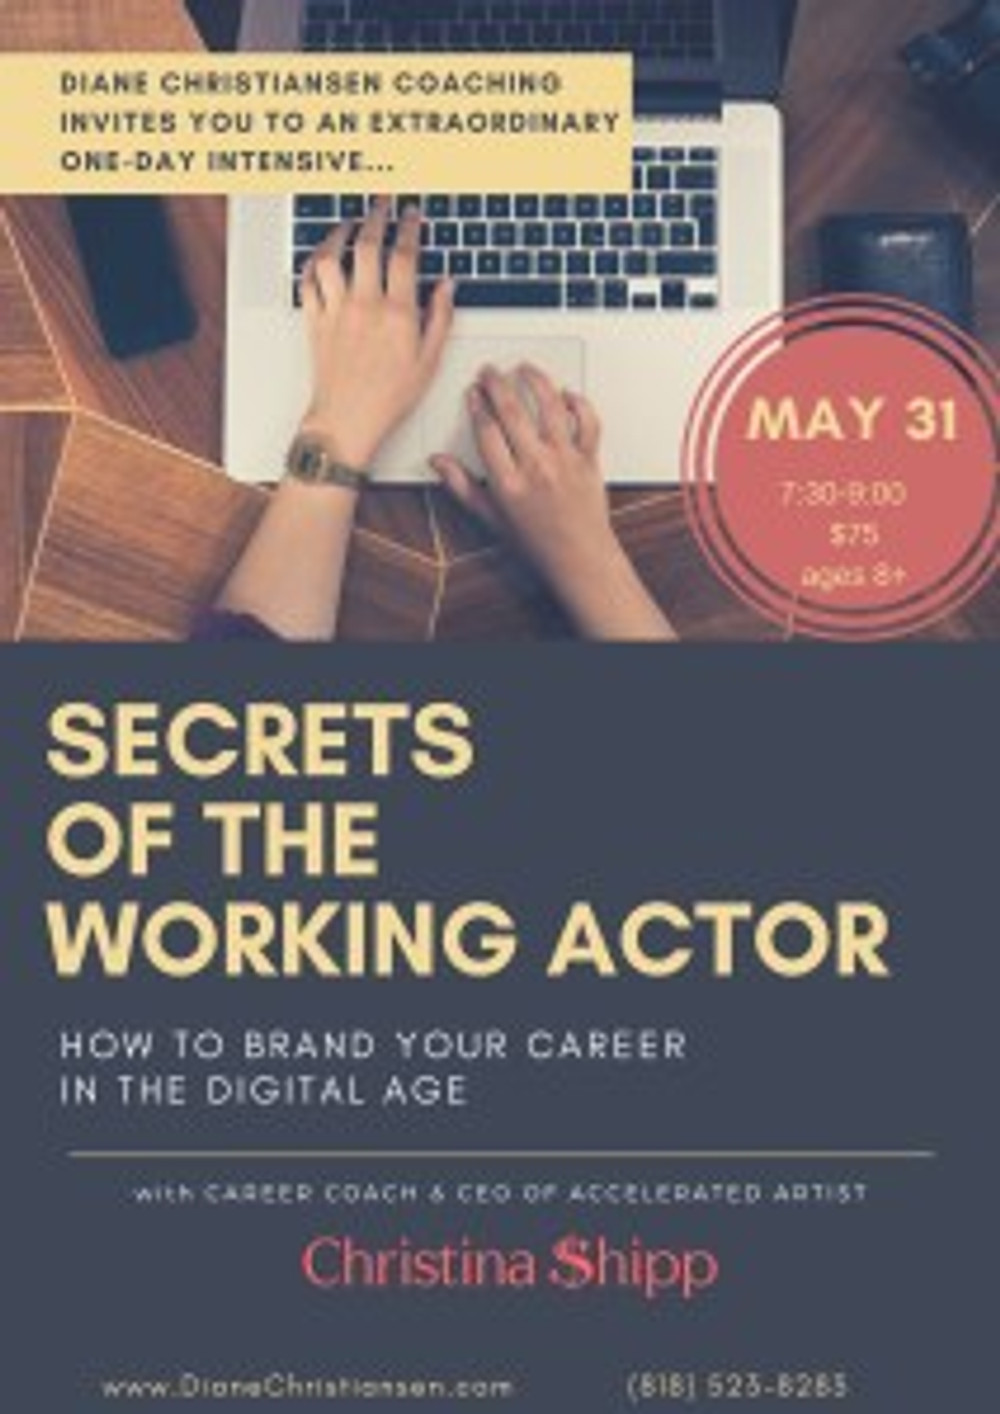 career branding, christina shipp, accelerated artist, summer acting class, acting workshops for actors of all ages, the dailies, career branding, summer acting class, media, classes for young actors, casting director, how to be make up artist, publicist, best class in la, teen actors